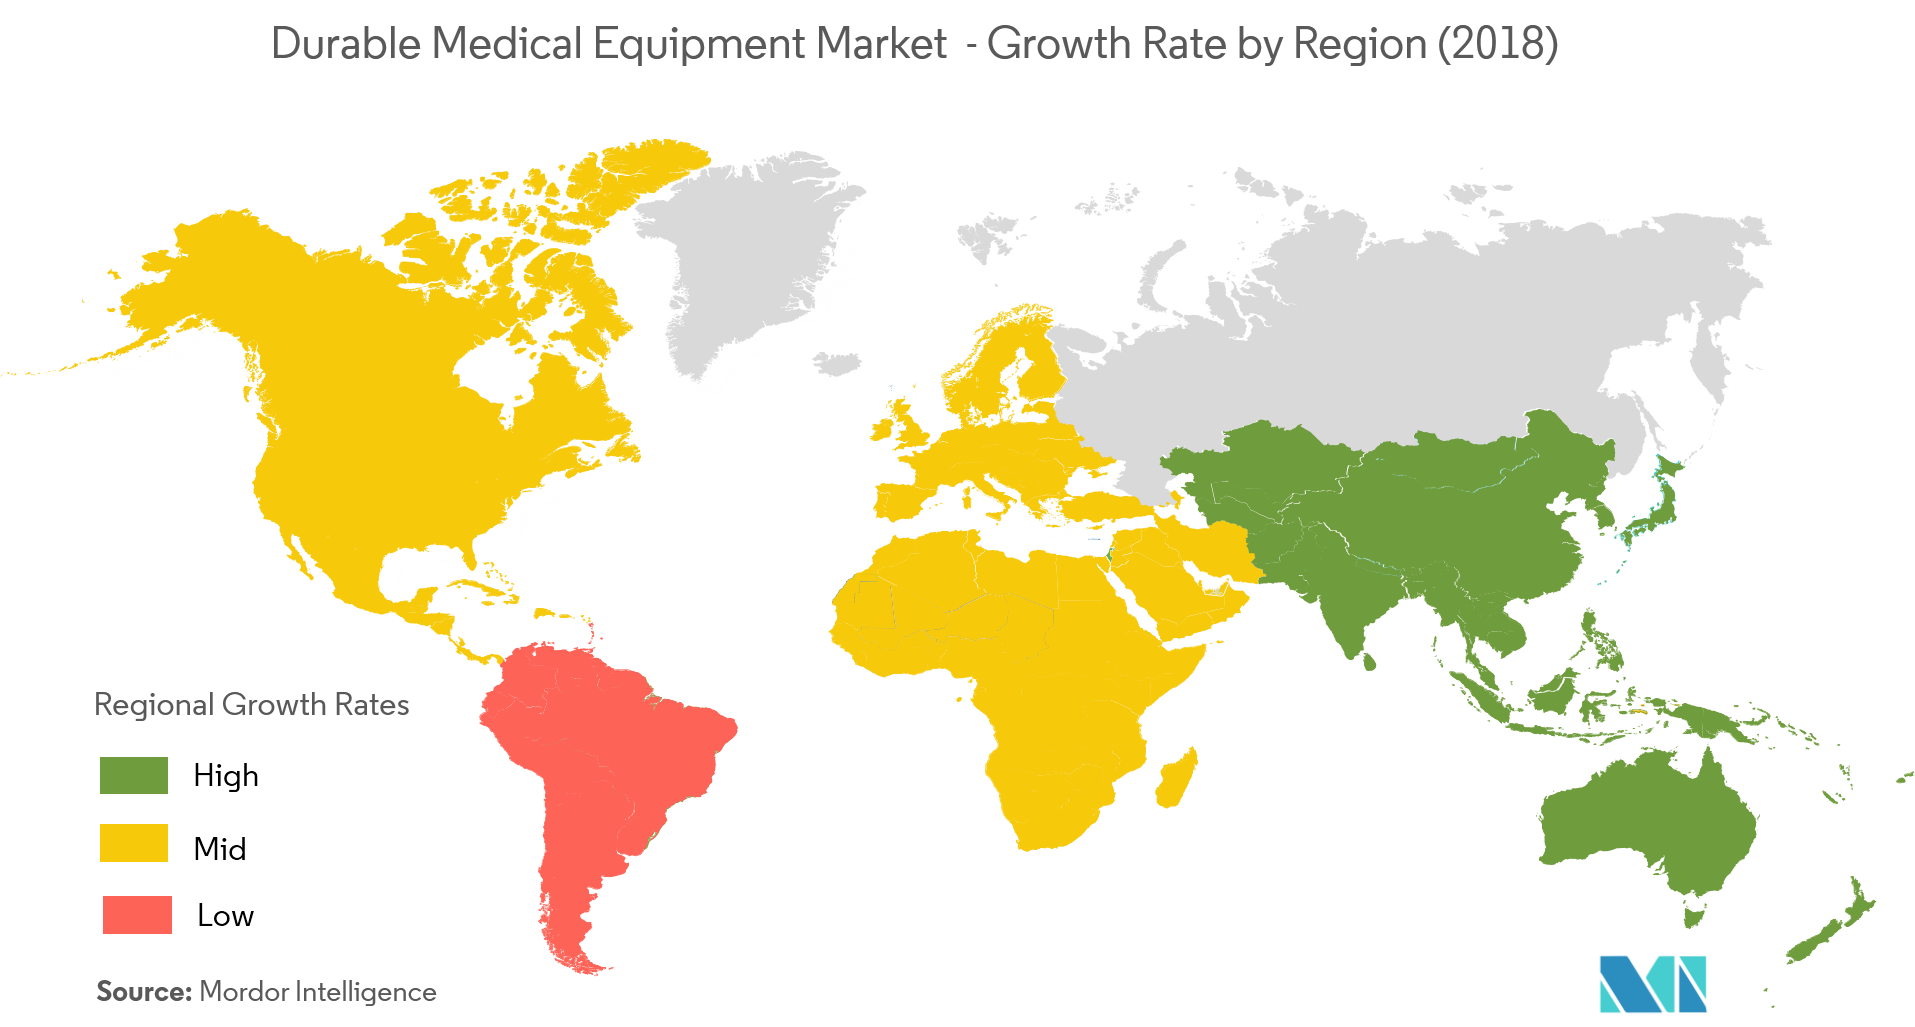 Picture 3_Durable Medical Equipment Market